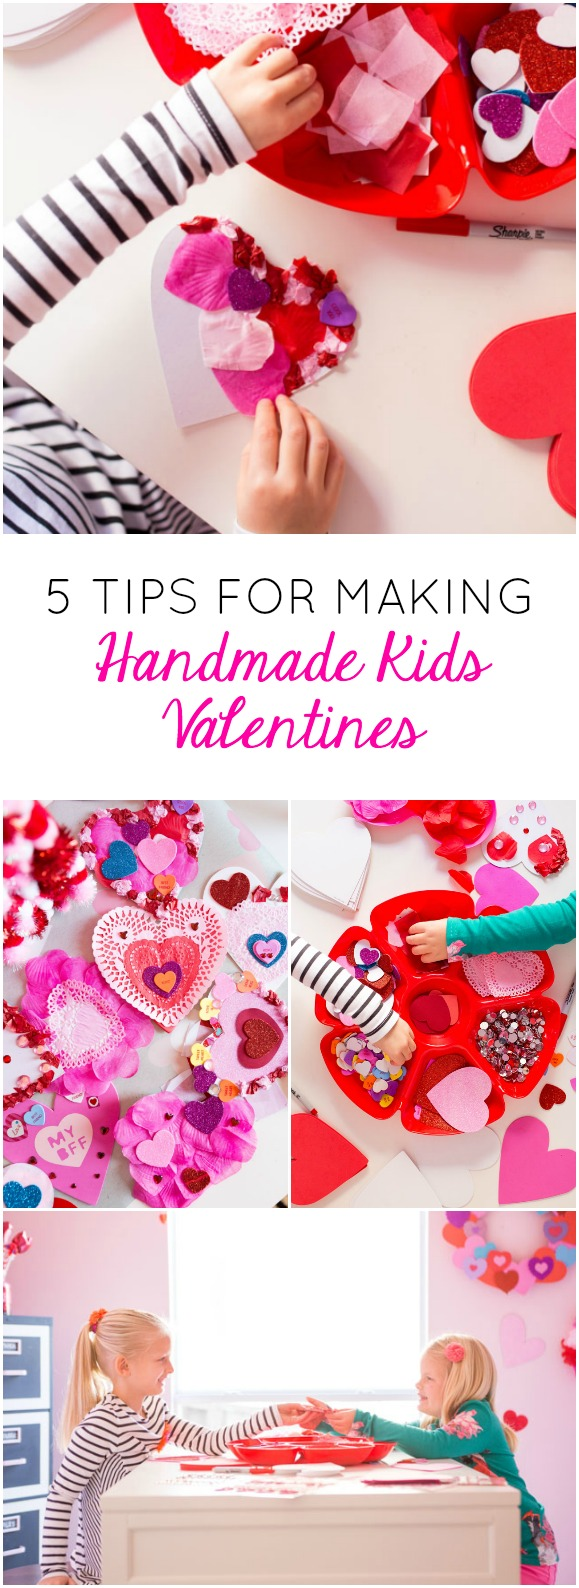 Have fun making easy handmade valentine cards with your kids this year!